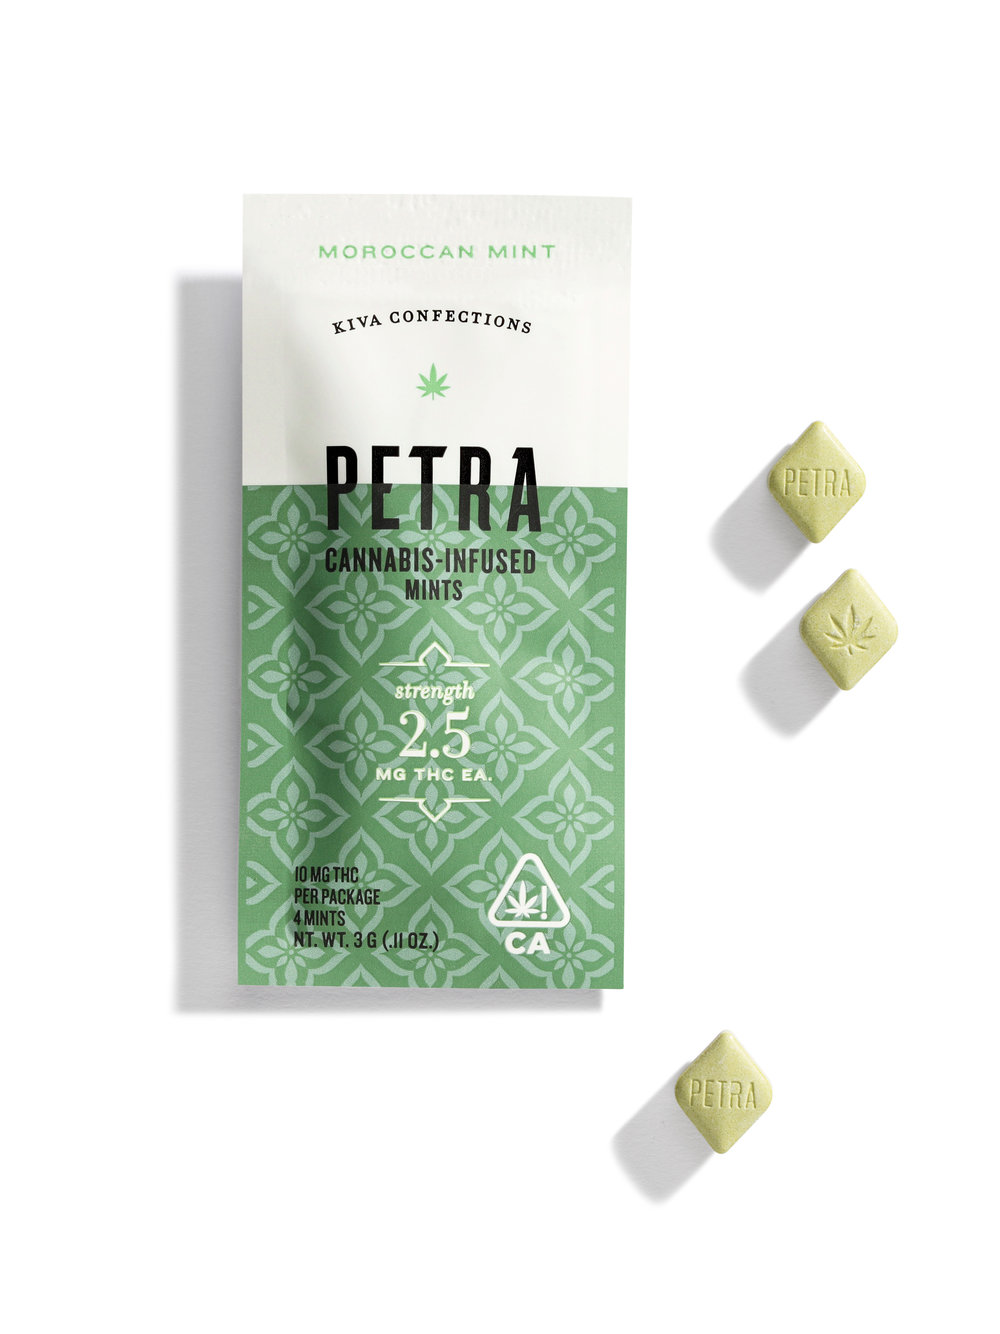 Petra.Moroccan.withMints.jpg